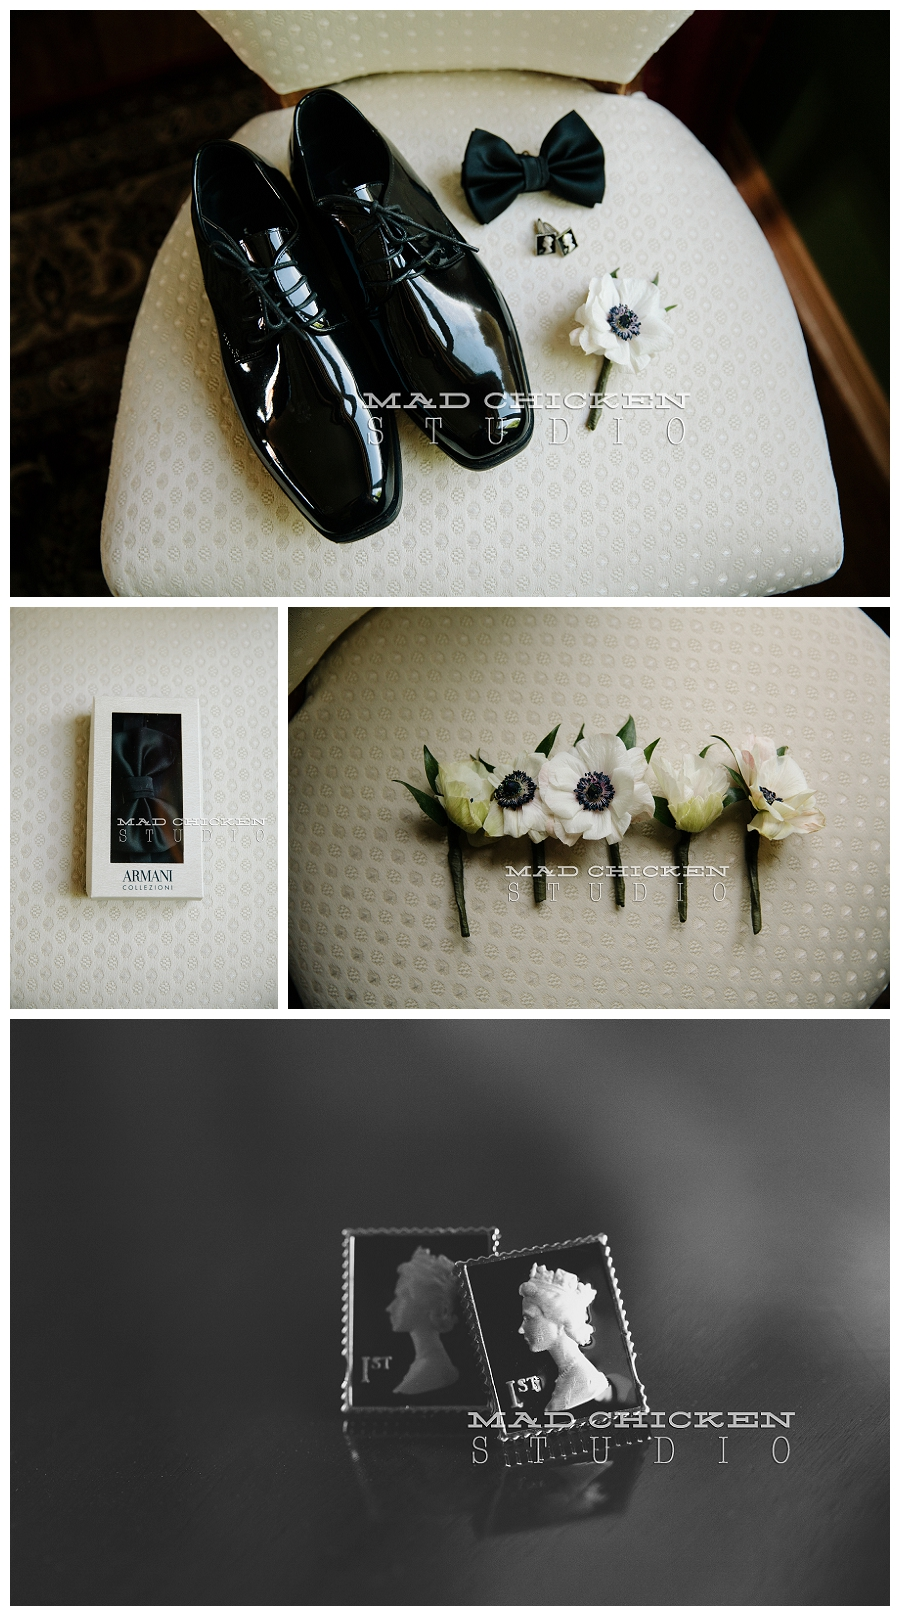 duluth wedding photographer | minneapolis, mn | jes hayes with mad chicken studio | hugo boss menswear | armani bow tie